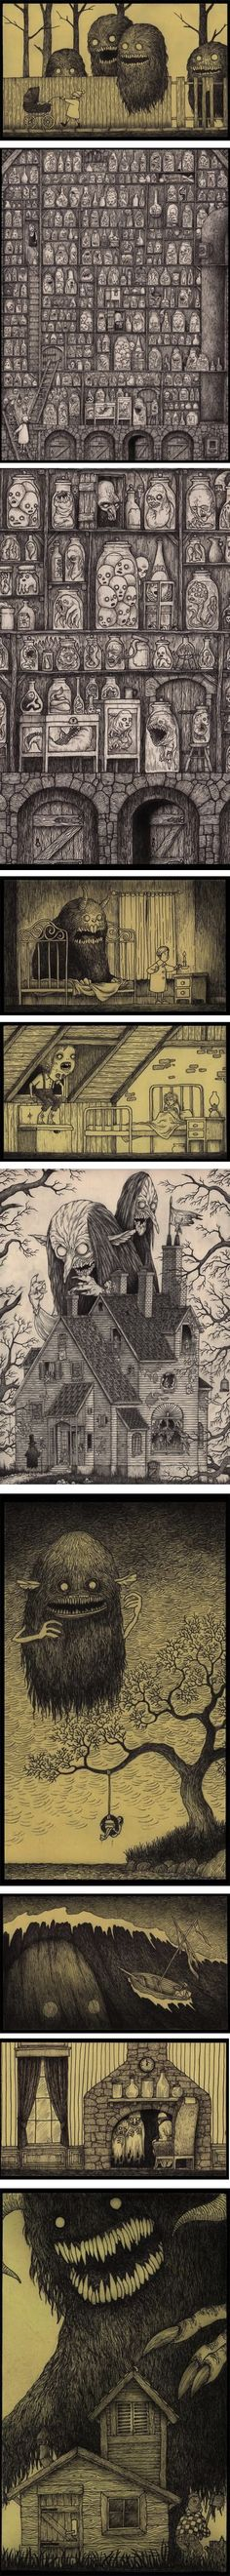 Don Kenn (AKA John Kenn Mortensen), who continues to fill Post-It pads and other odds and ends of office supplies with pen drawings of his d...